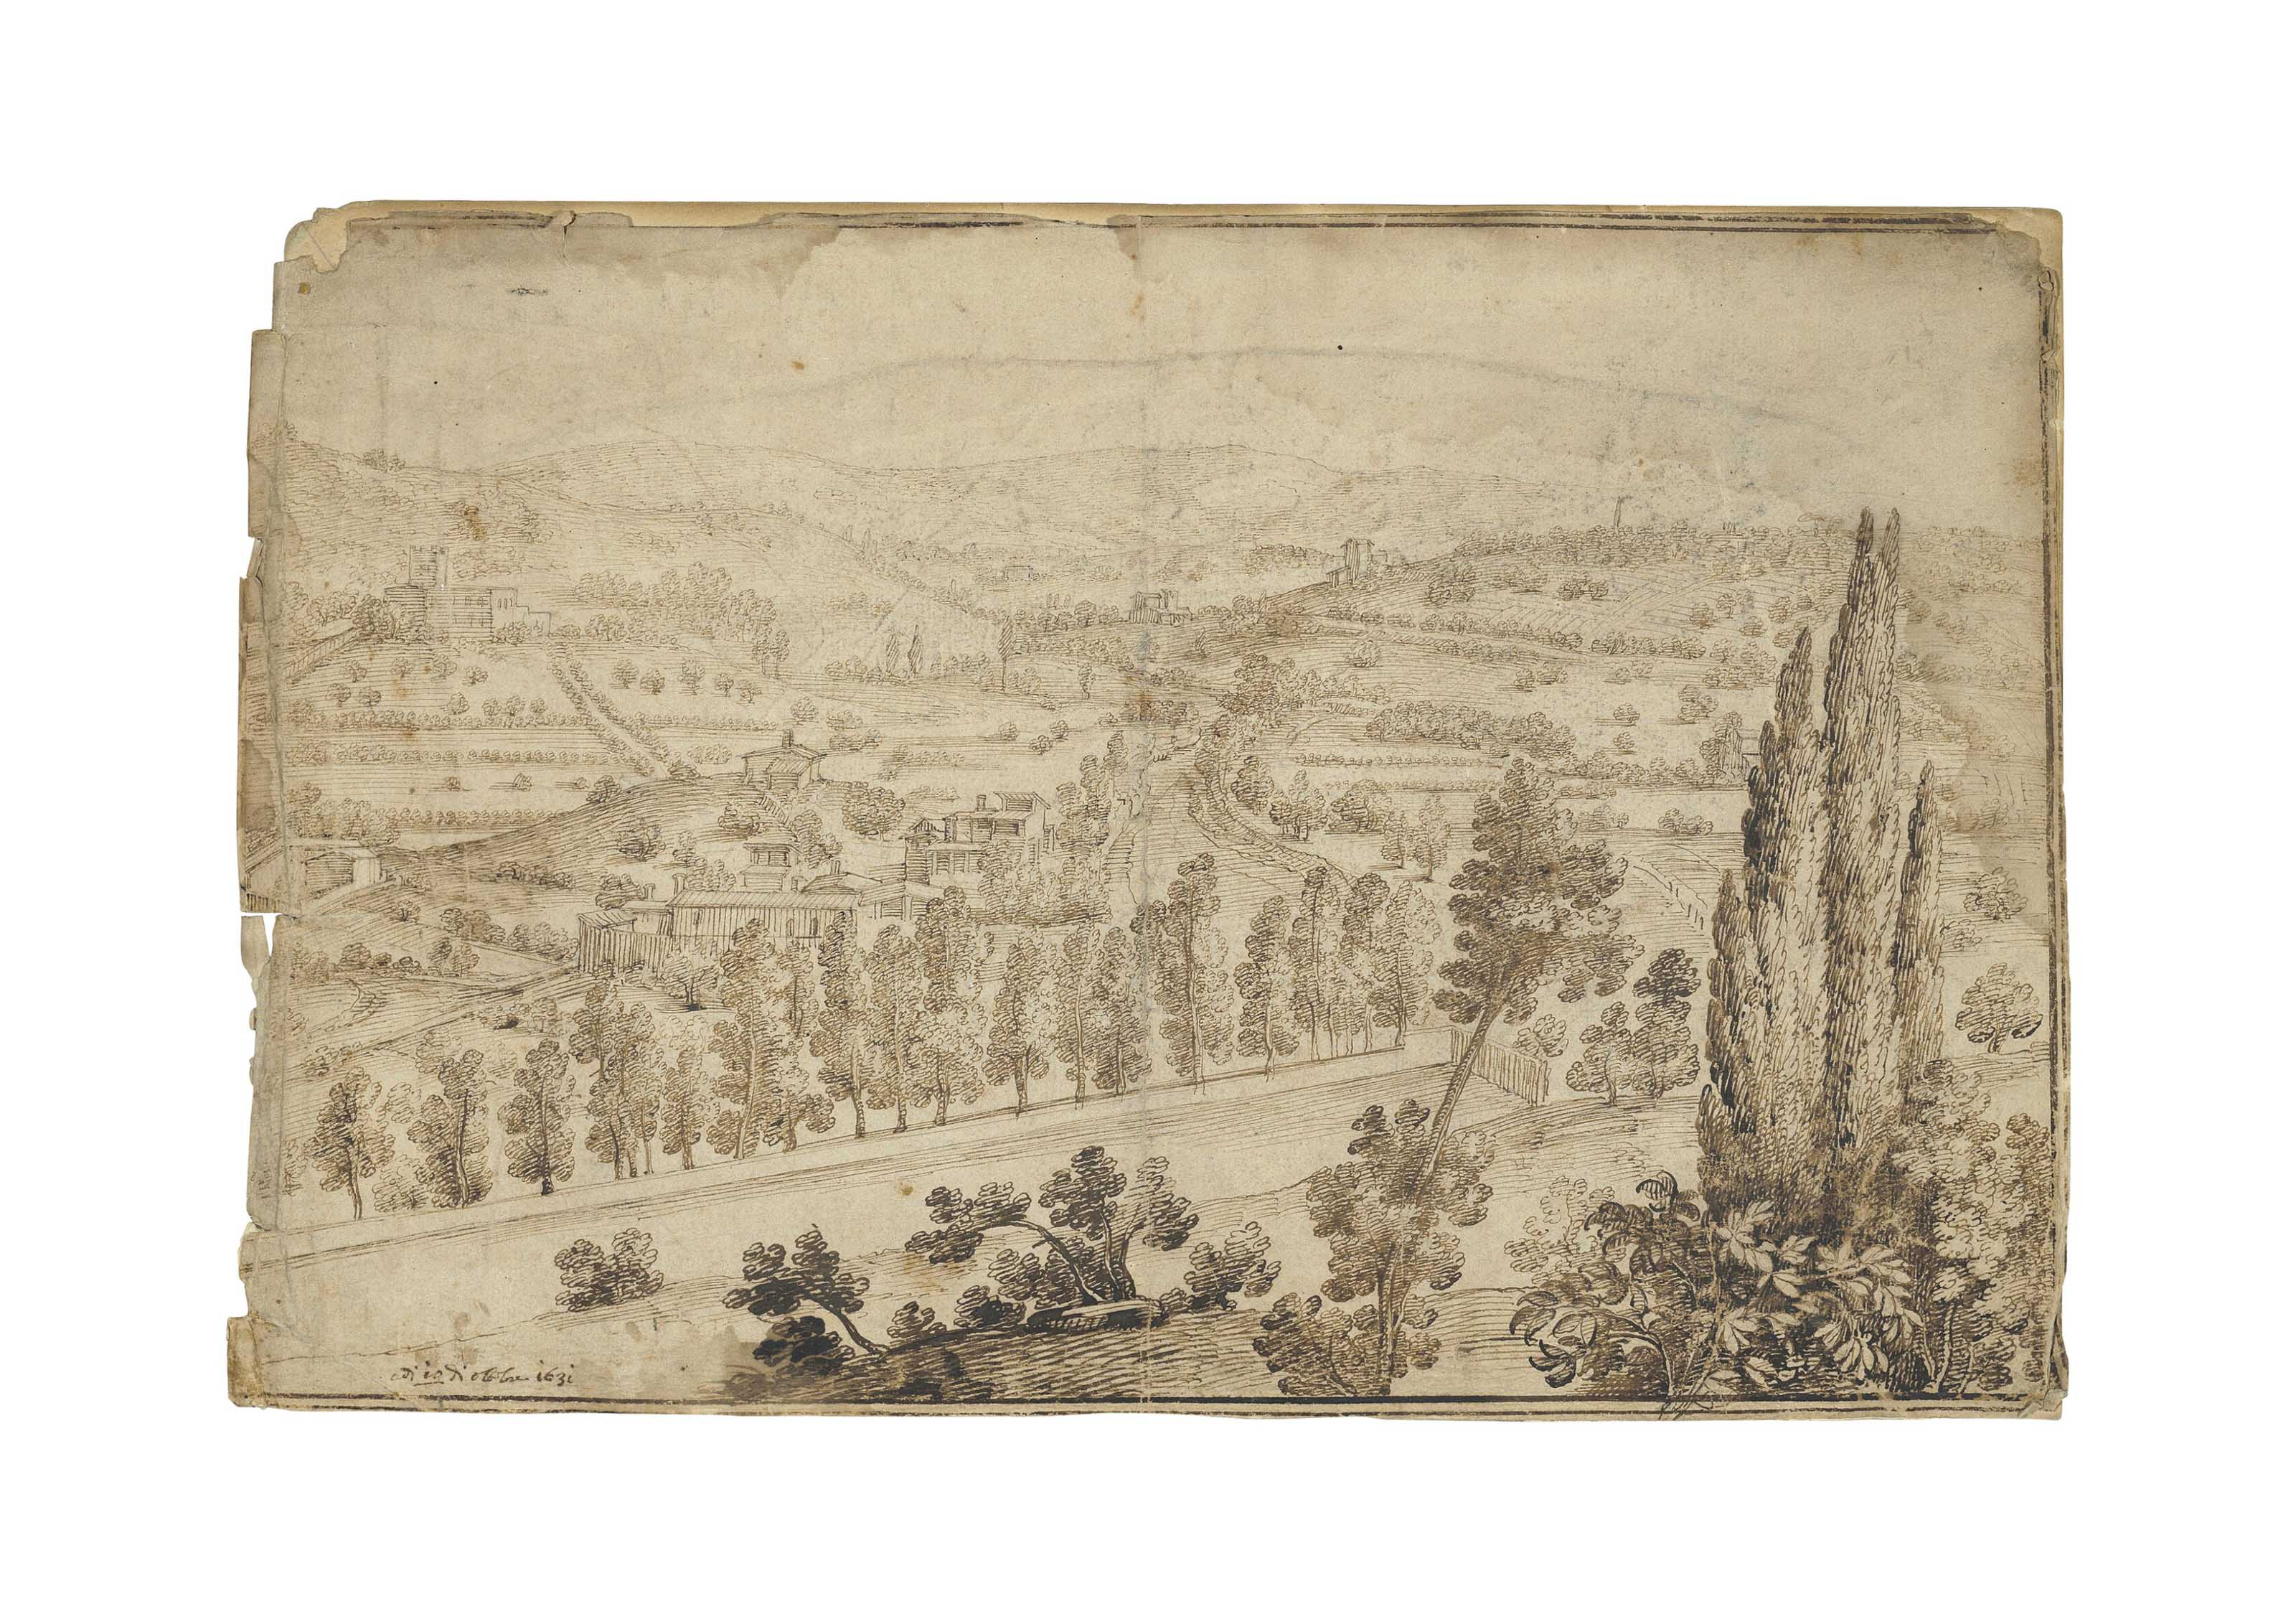 A view of a hilled landscape with houses, possibly in Tuscany